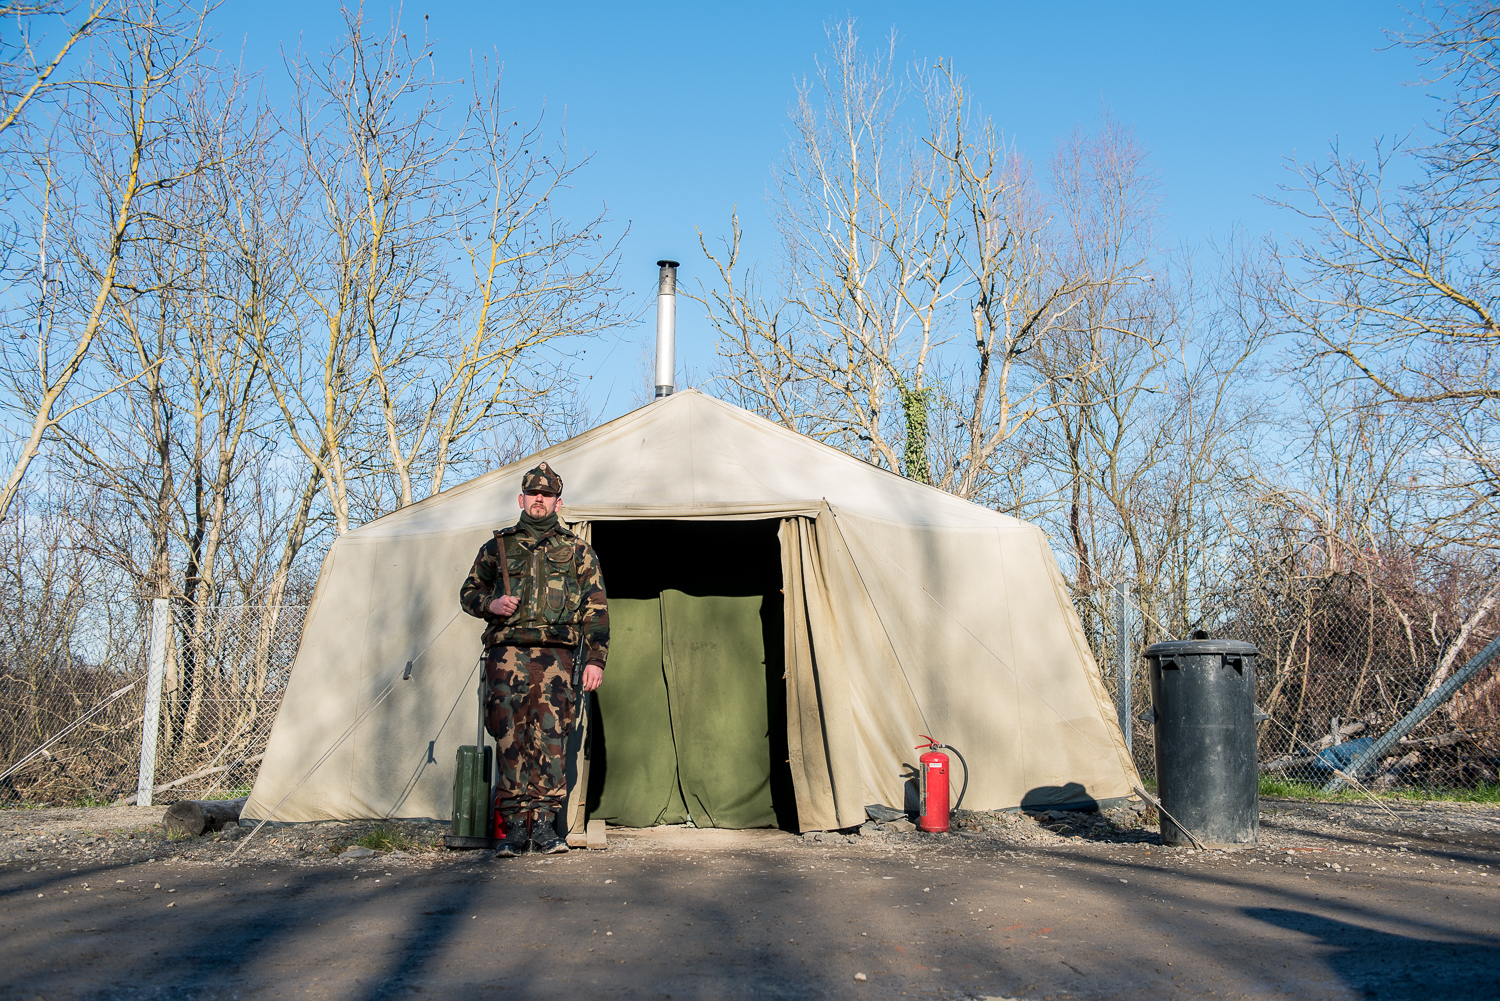 Soldier stands in front of a military warming tent to secure the border between Hungary and Serbia near Hercegszántó Hungary 24 December 2017. The Hungarian border fence was constructed in the middle of the European migration crisis in 2015, with the aim to ensure border security by preventing immigrants from entering the country and the European Union illegally.